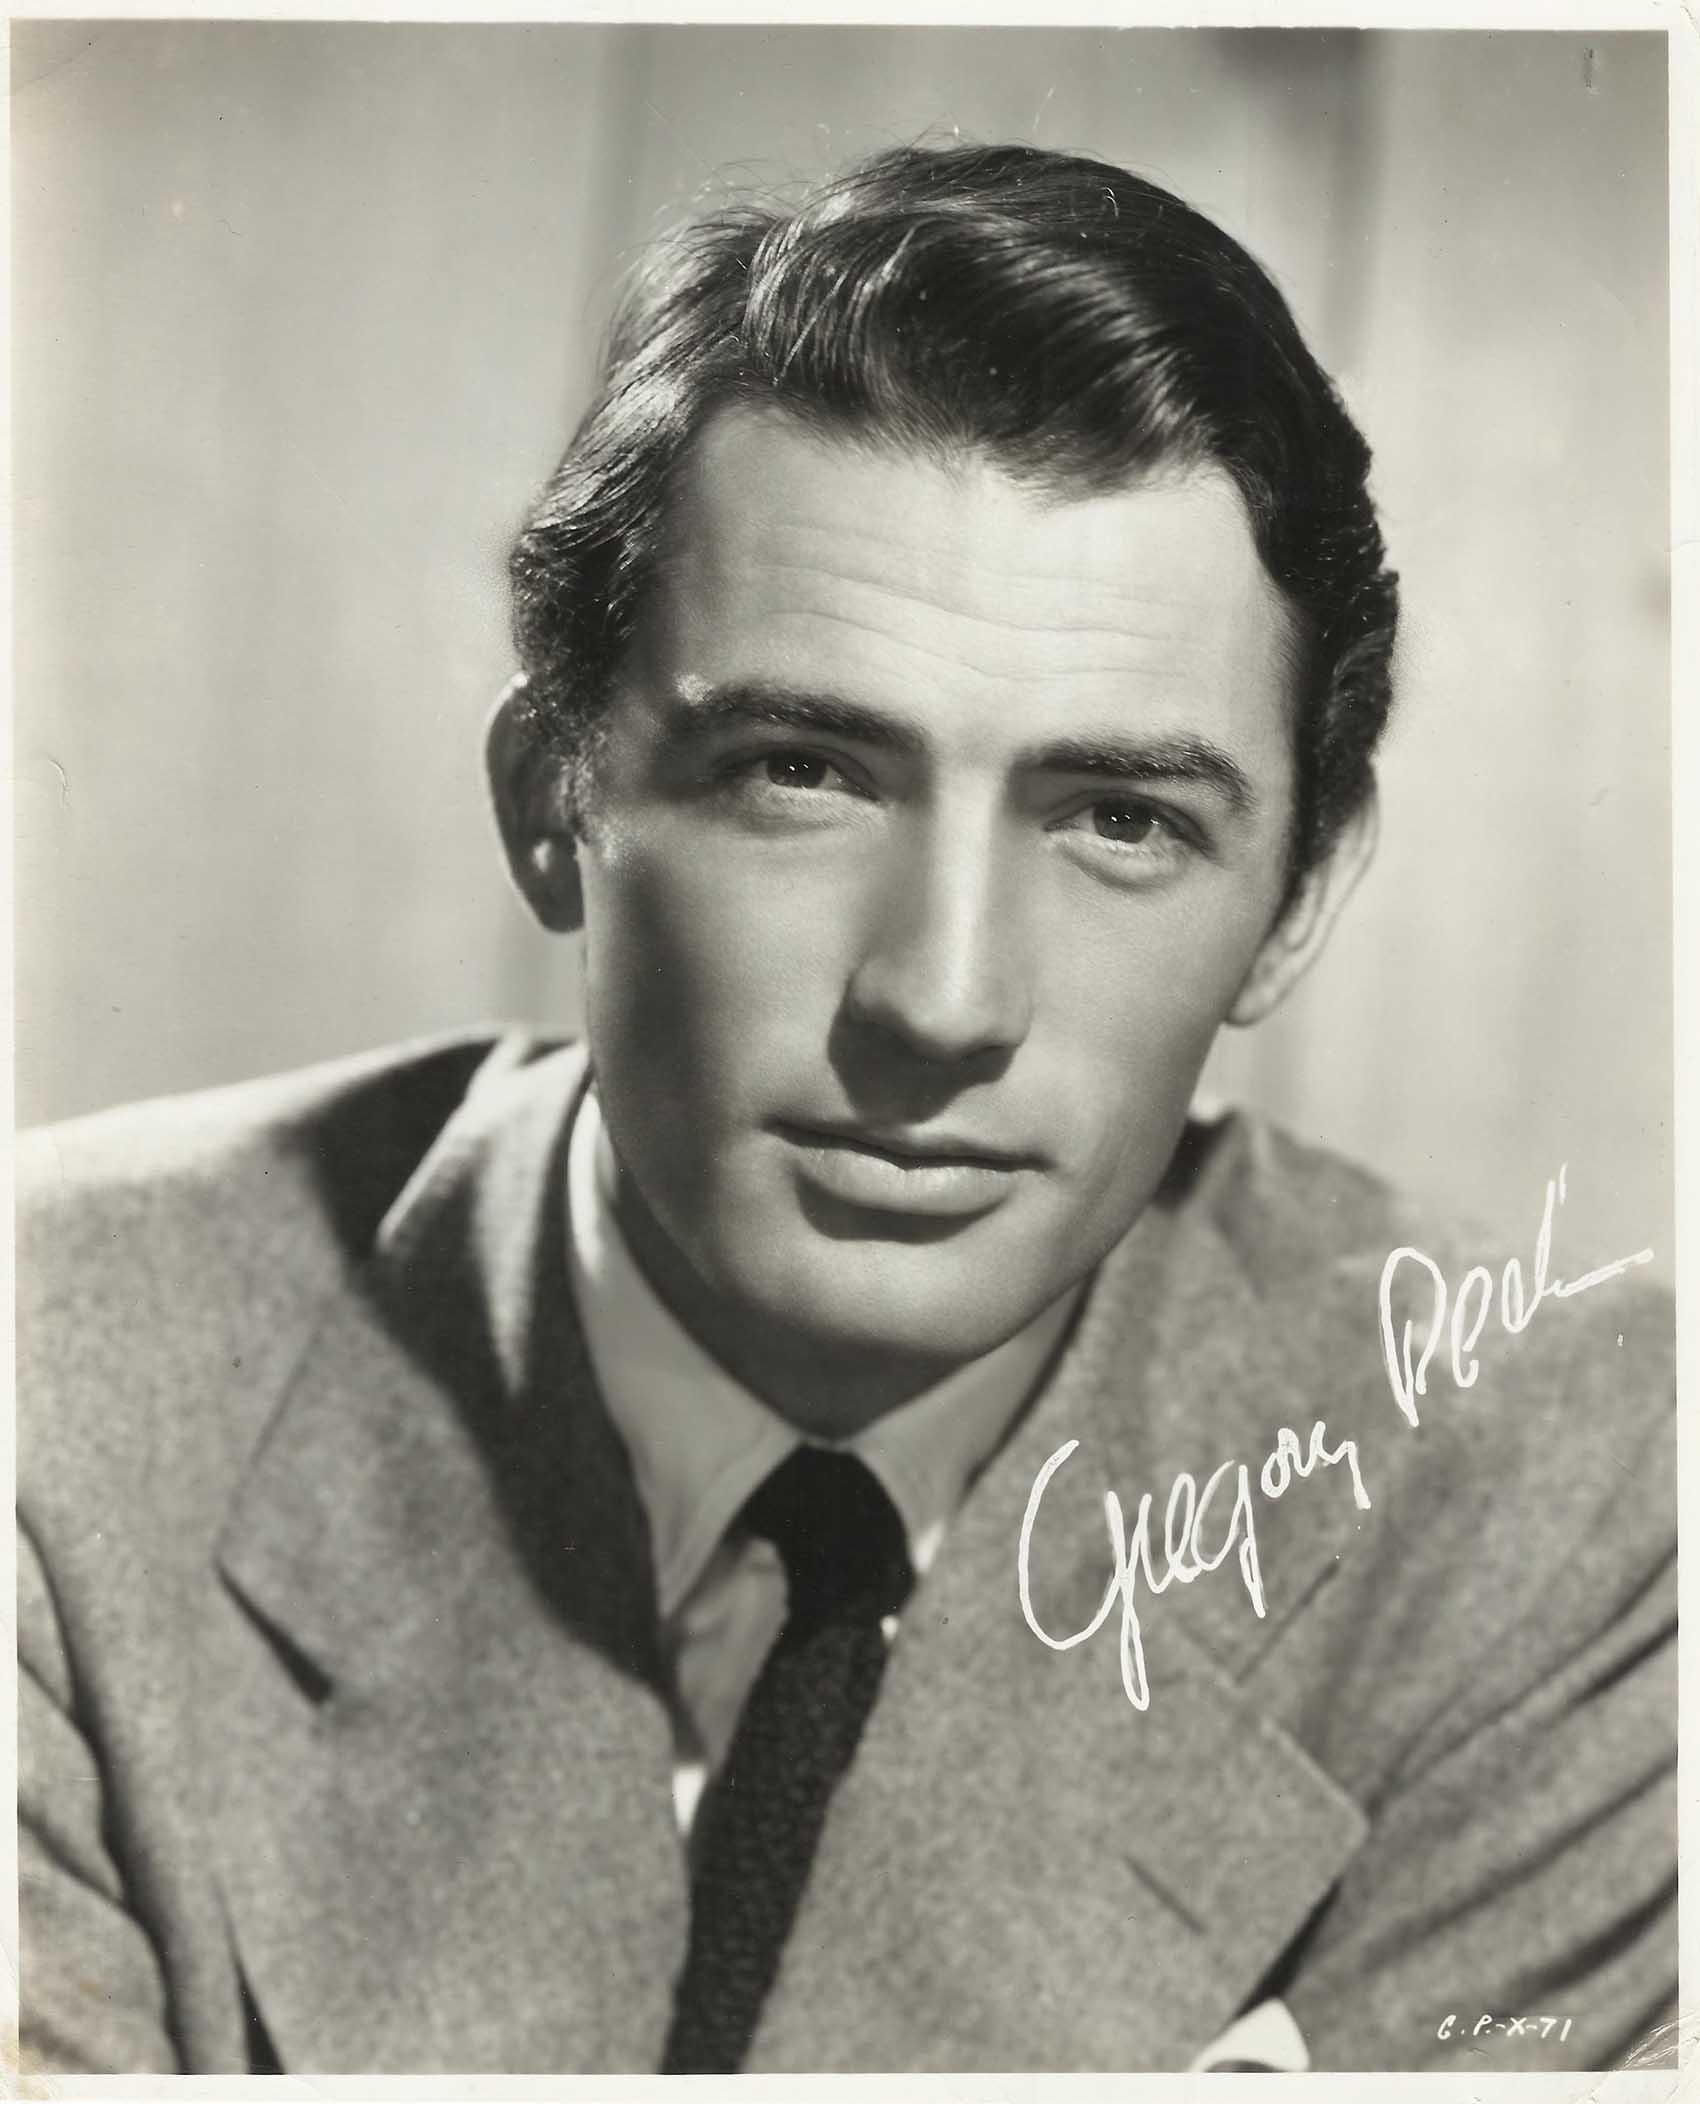 506373551823396664 together with Retro Renovations 2014 Color Year Harvest Gold further Gregory Peck Original Vintage Printed Signature Photo 1940s Portrait also 21804728 as well 648568063. on vintage appliances ads